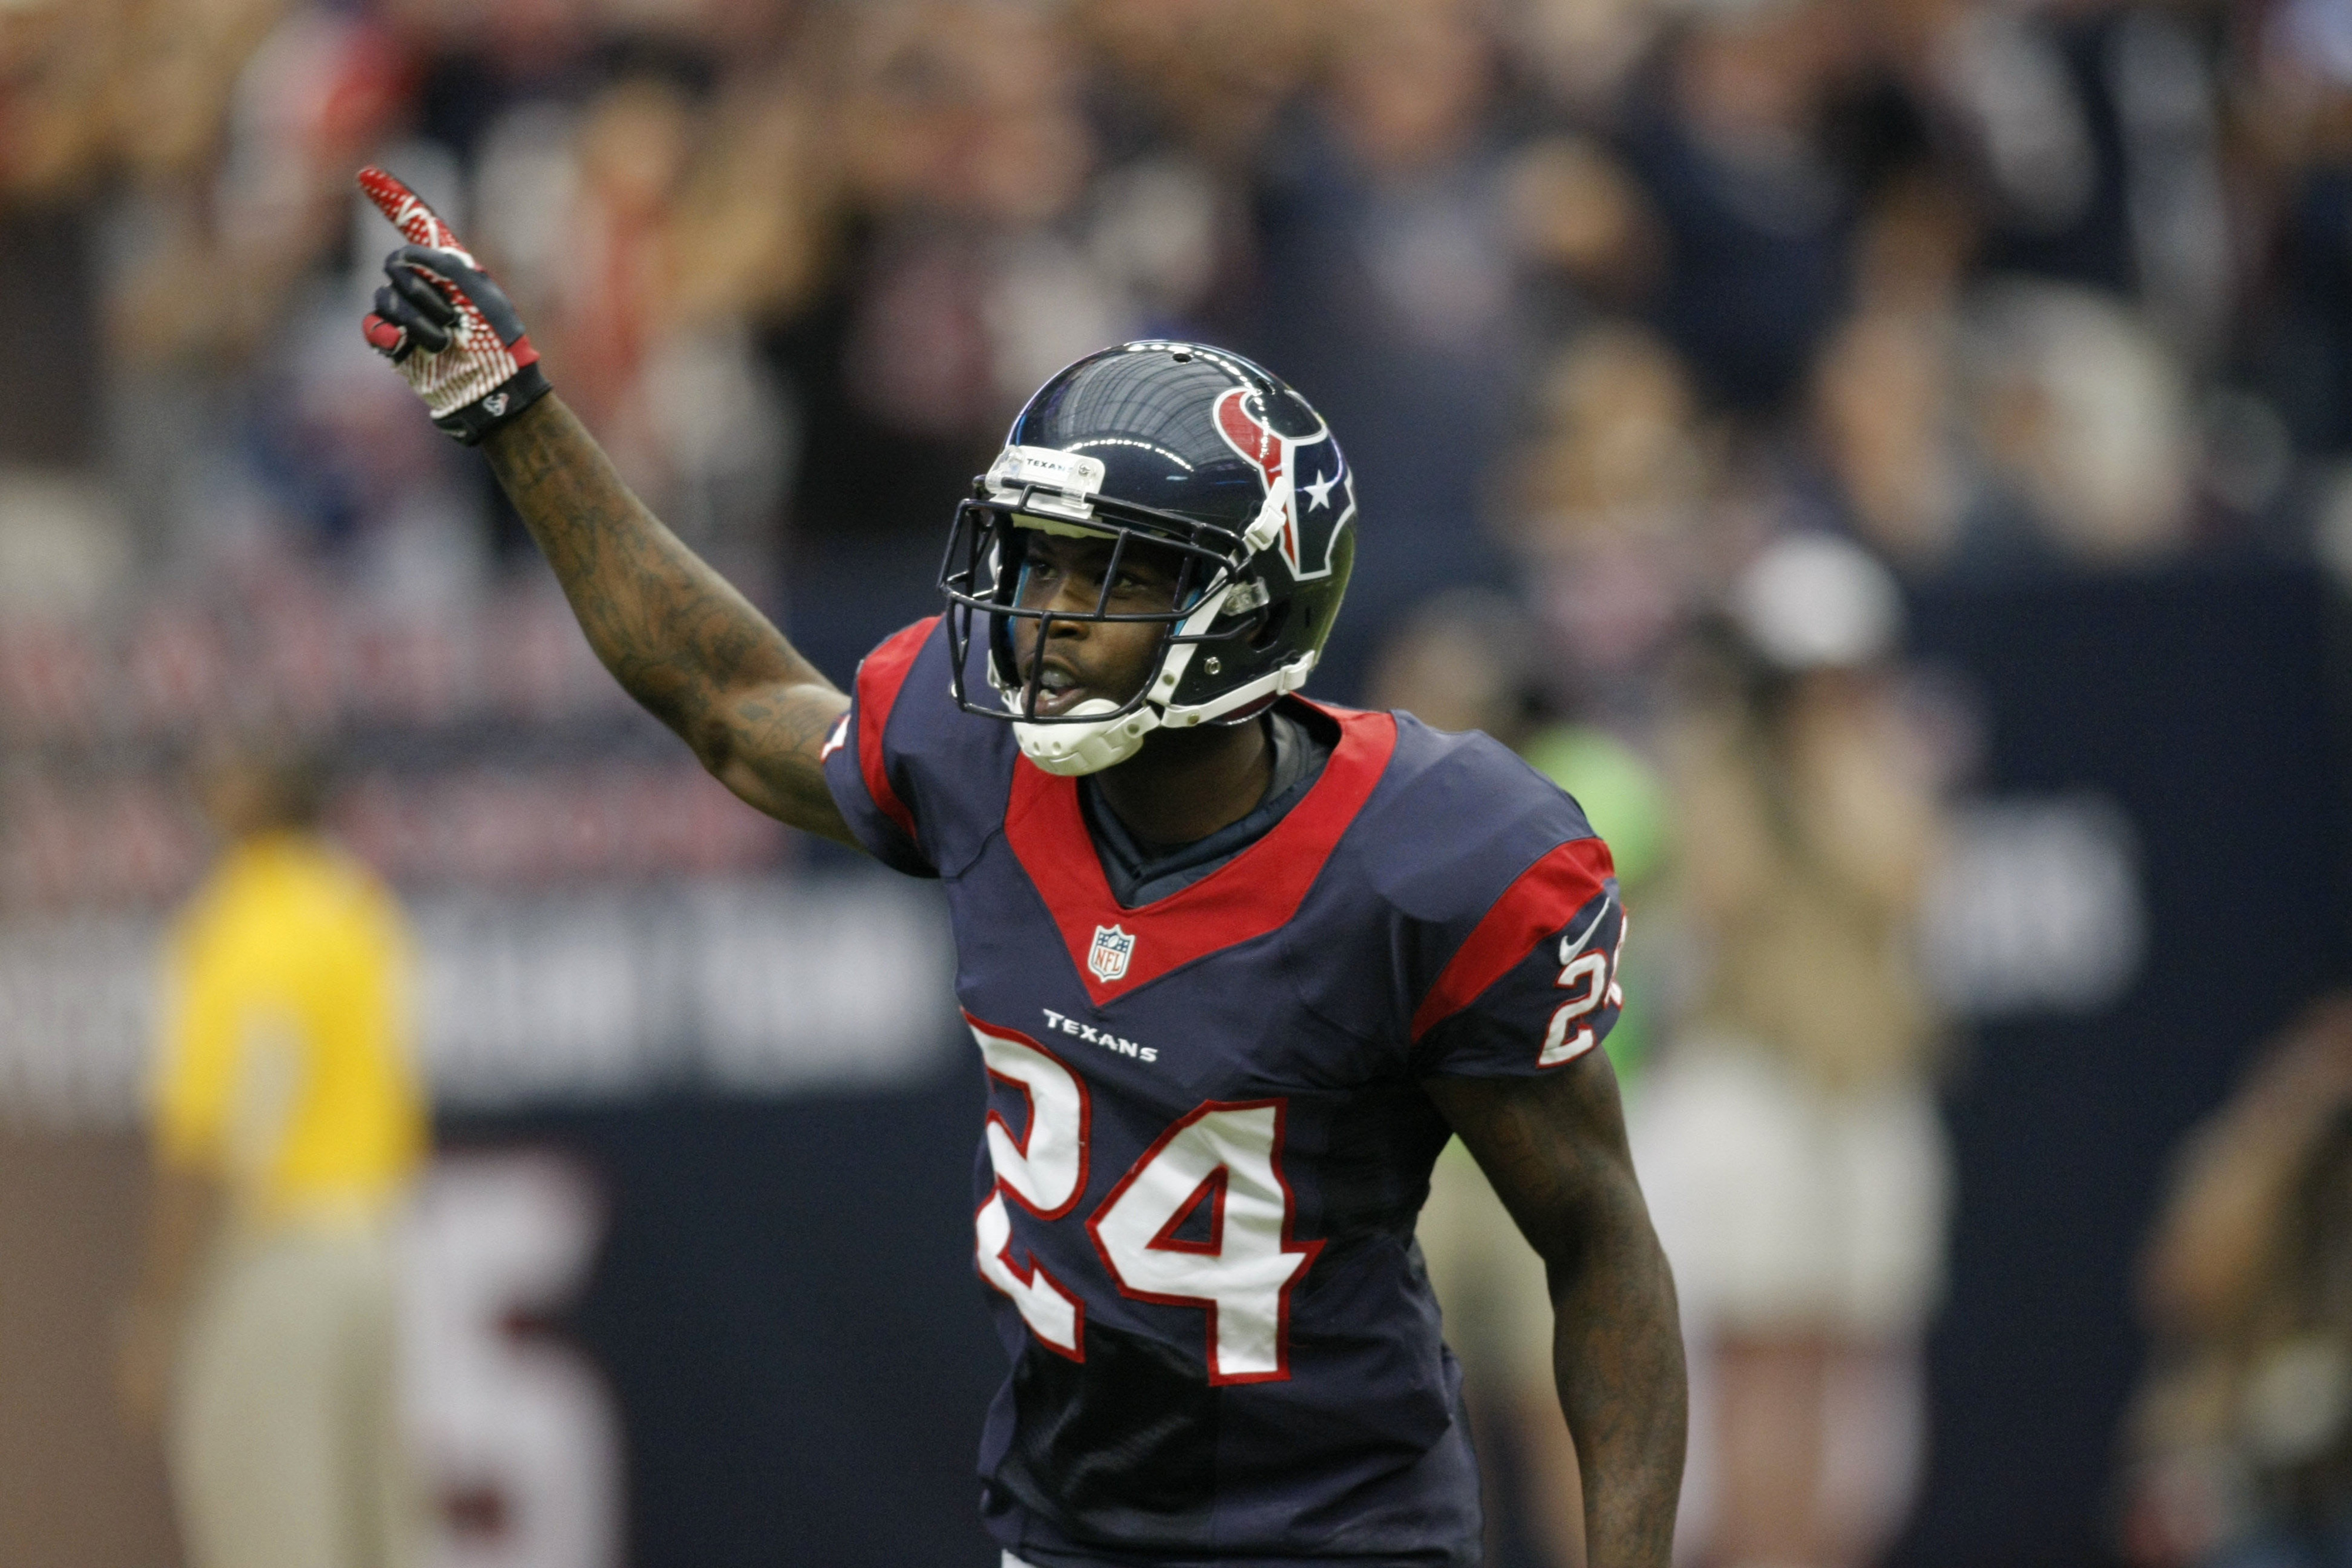 J-Jo advises the public of the Texans' place in the AFC South.